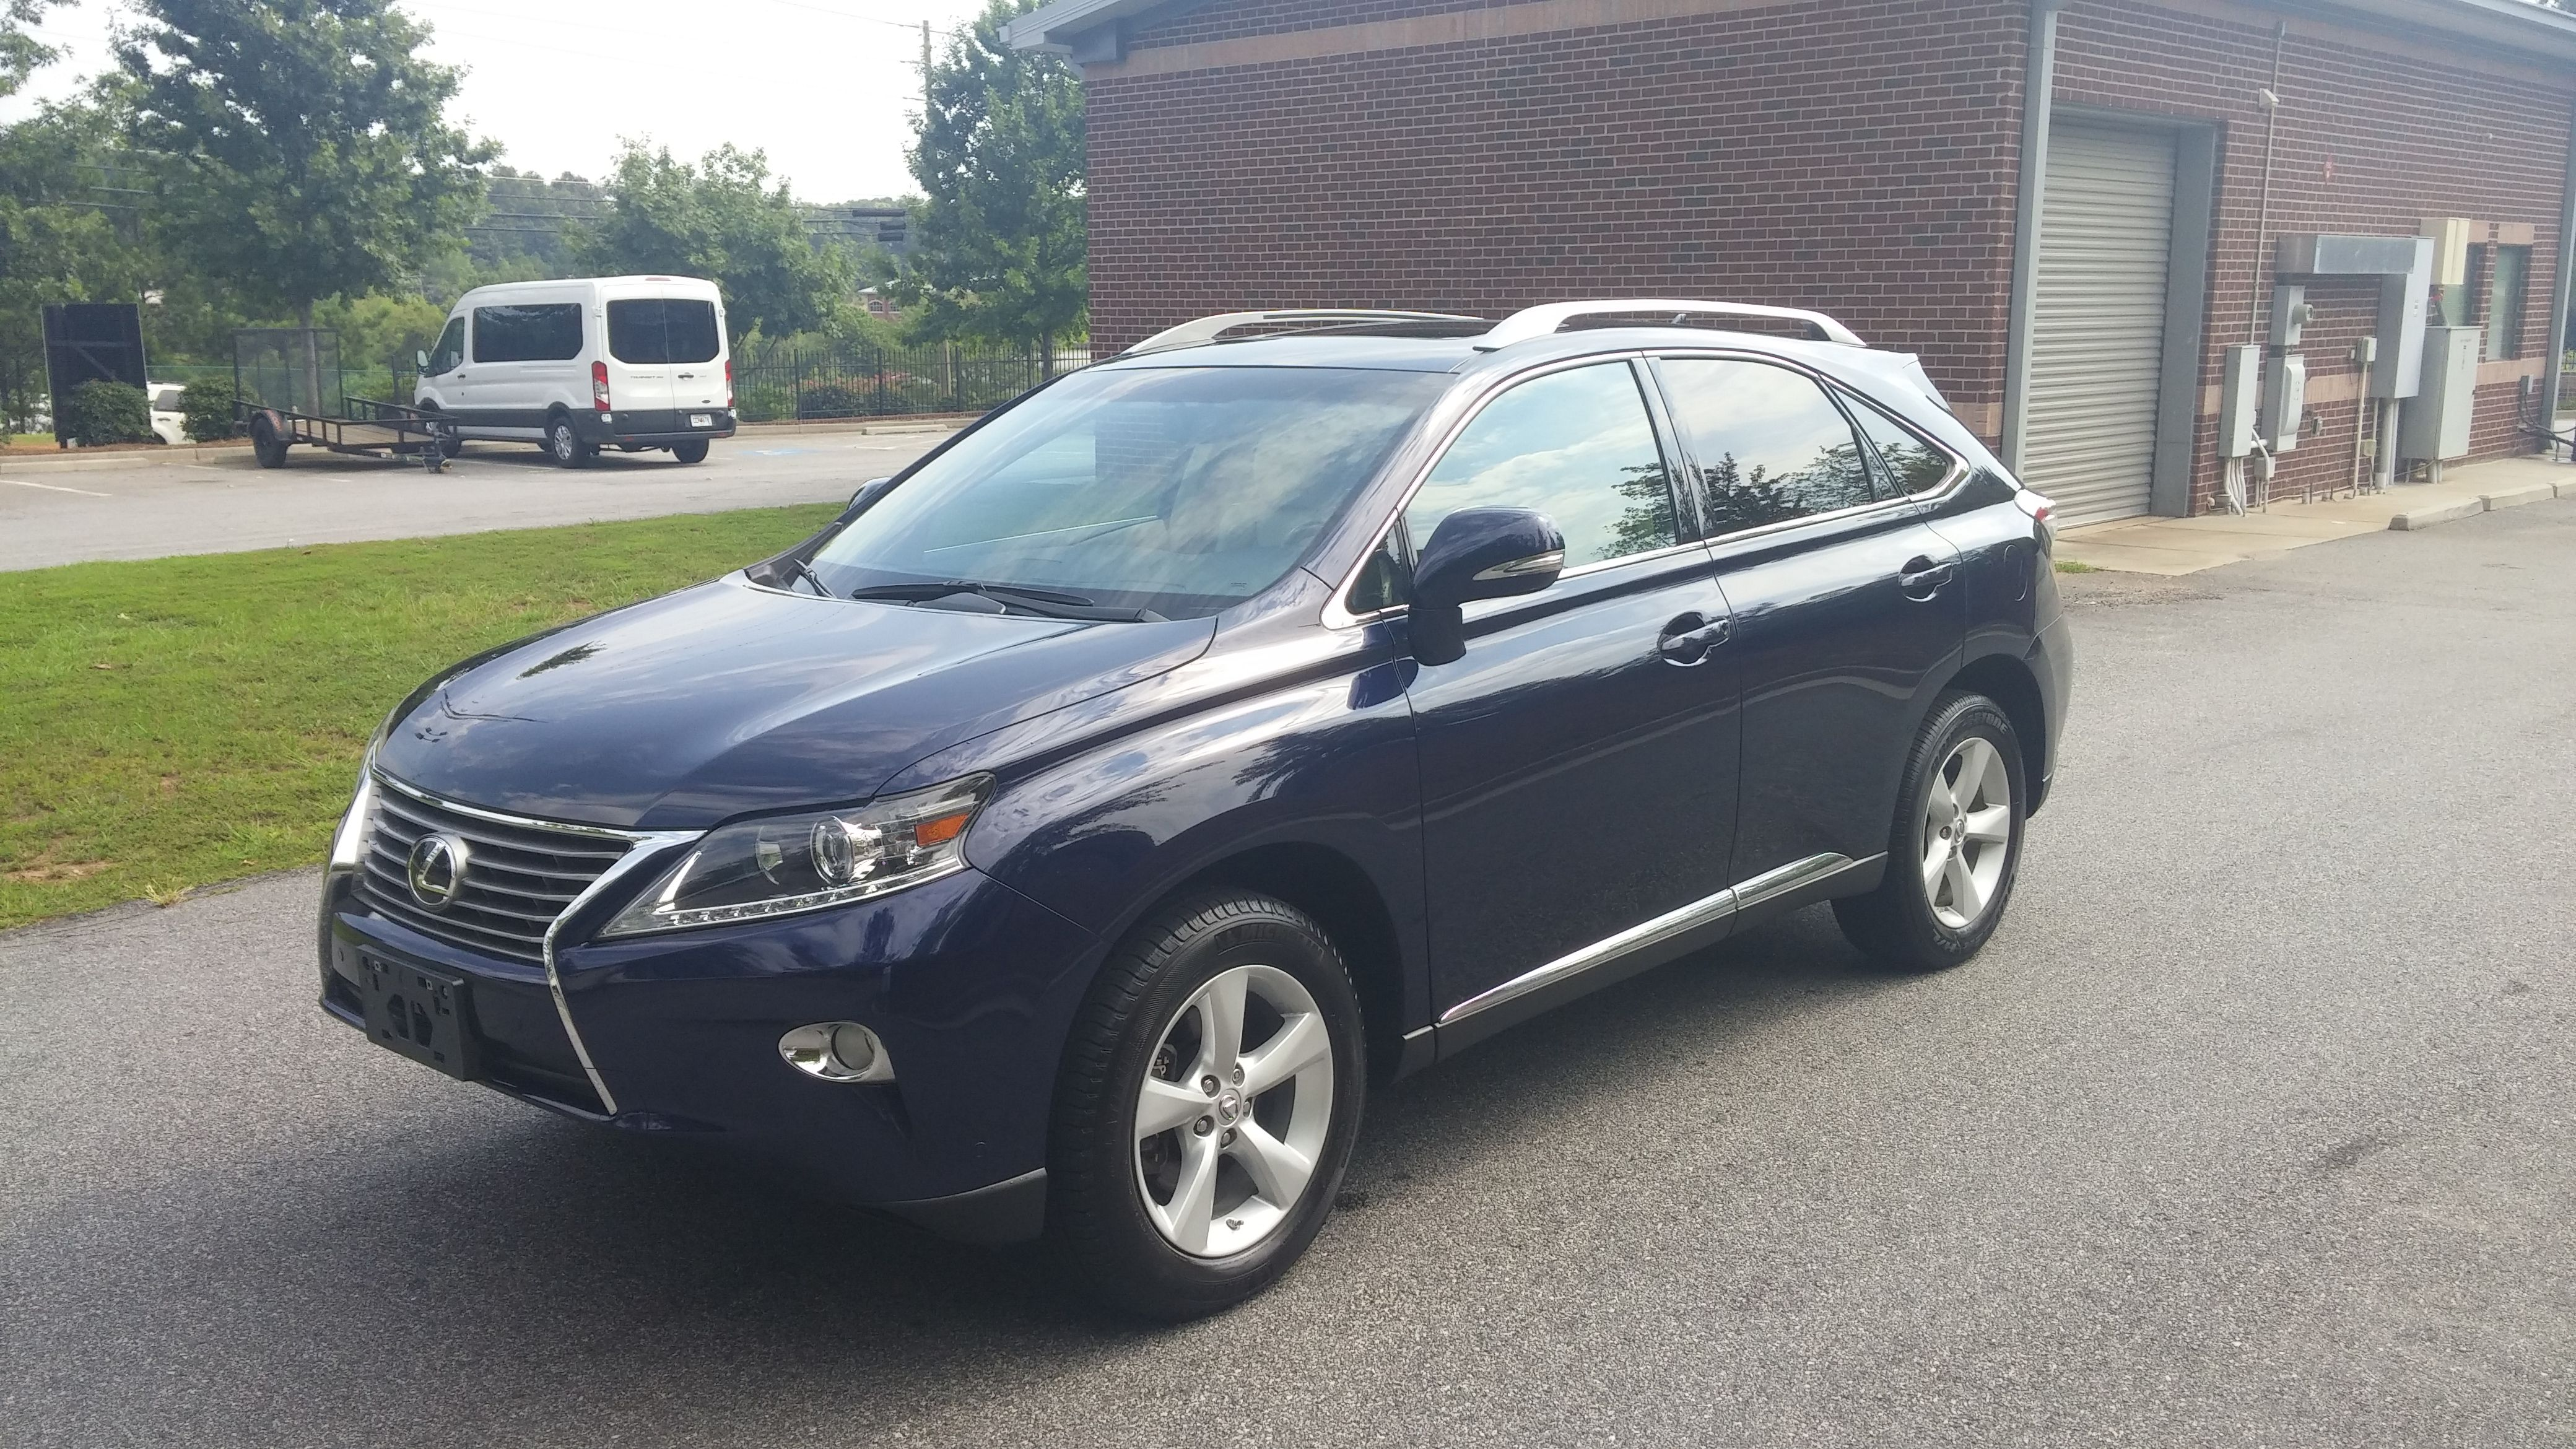 2013 Lexus RX 350 SUV AWD 21 000 miles f lease unit